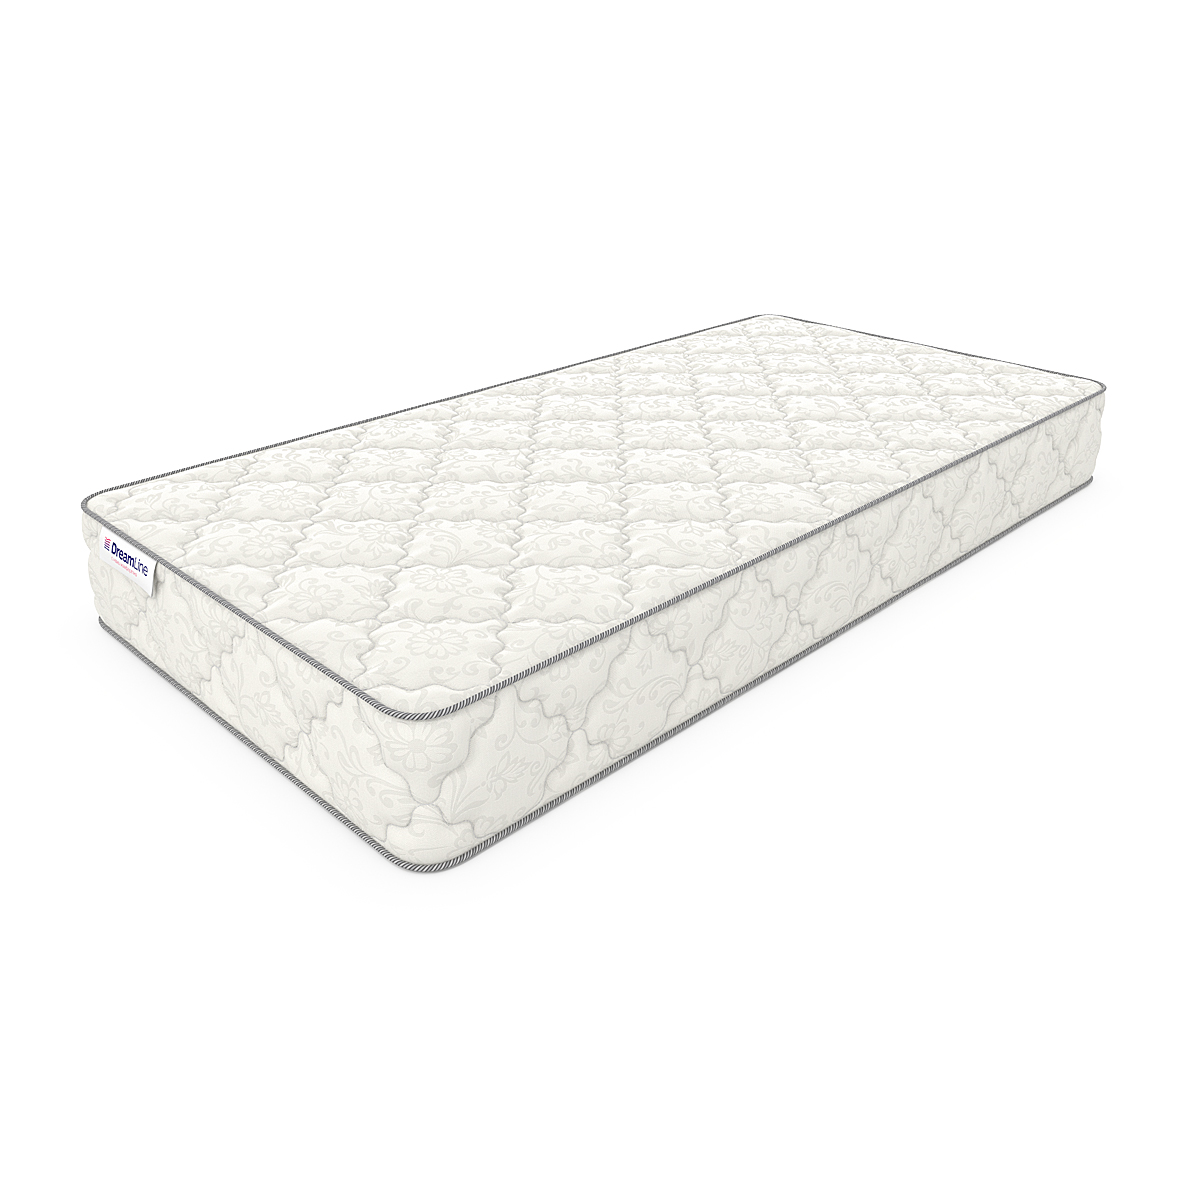 matras-single-hol -tfk-1